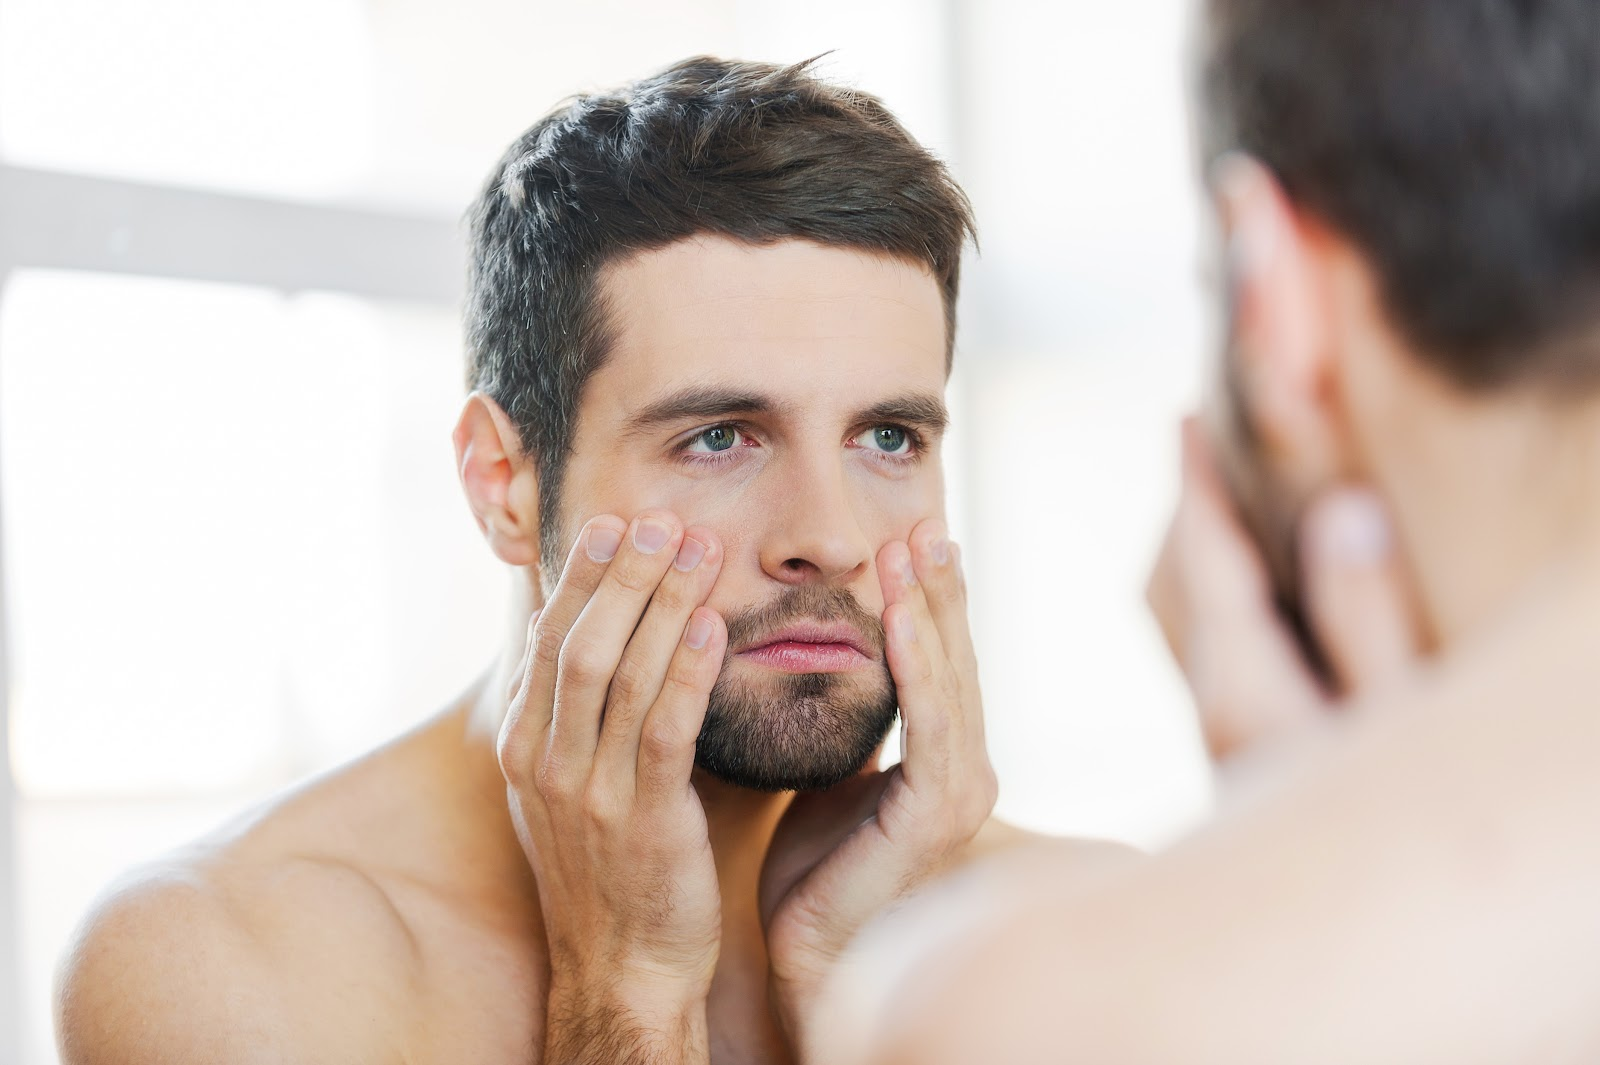 The UK Sees A Rise In 'Male Makeovers' & Cosmetic Surgery Procedures